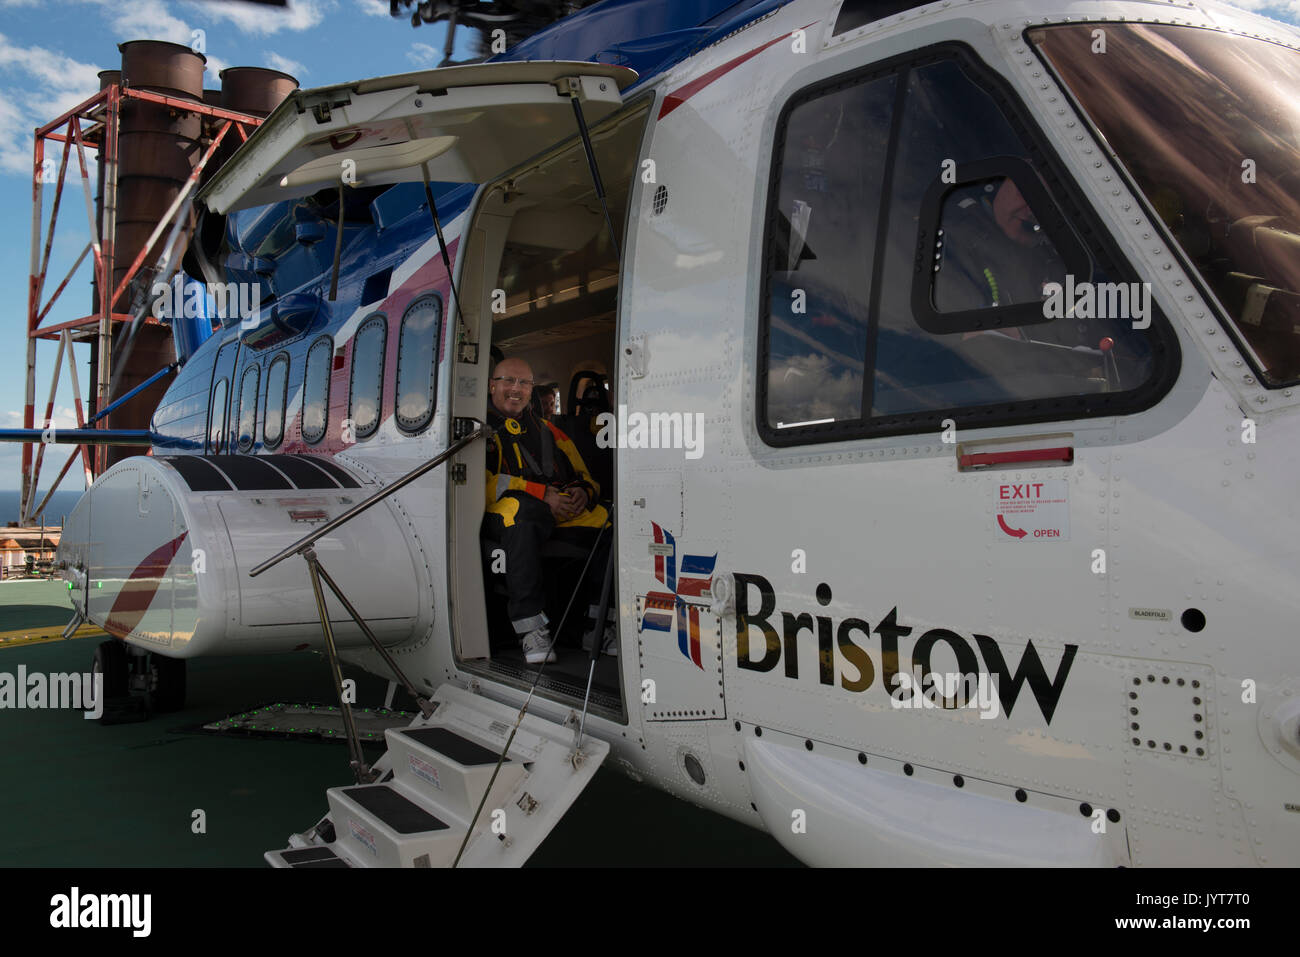 Bristow Helicopter, landing on a north sea oil and gas platform. credit: LEE RAMSDEN / ALAMY - Stock Image